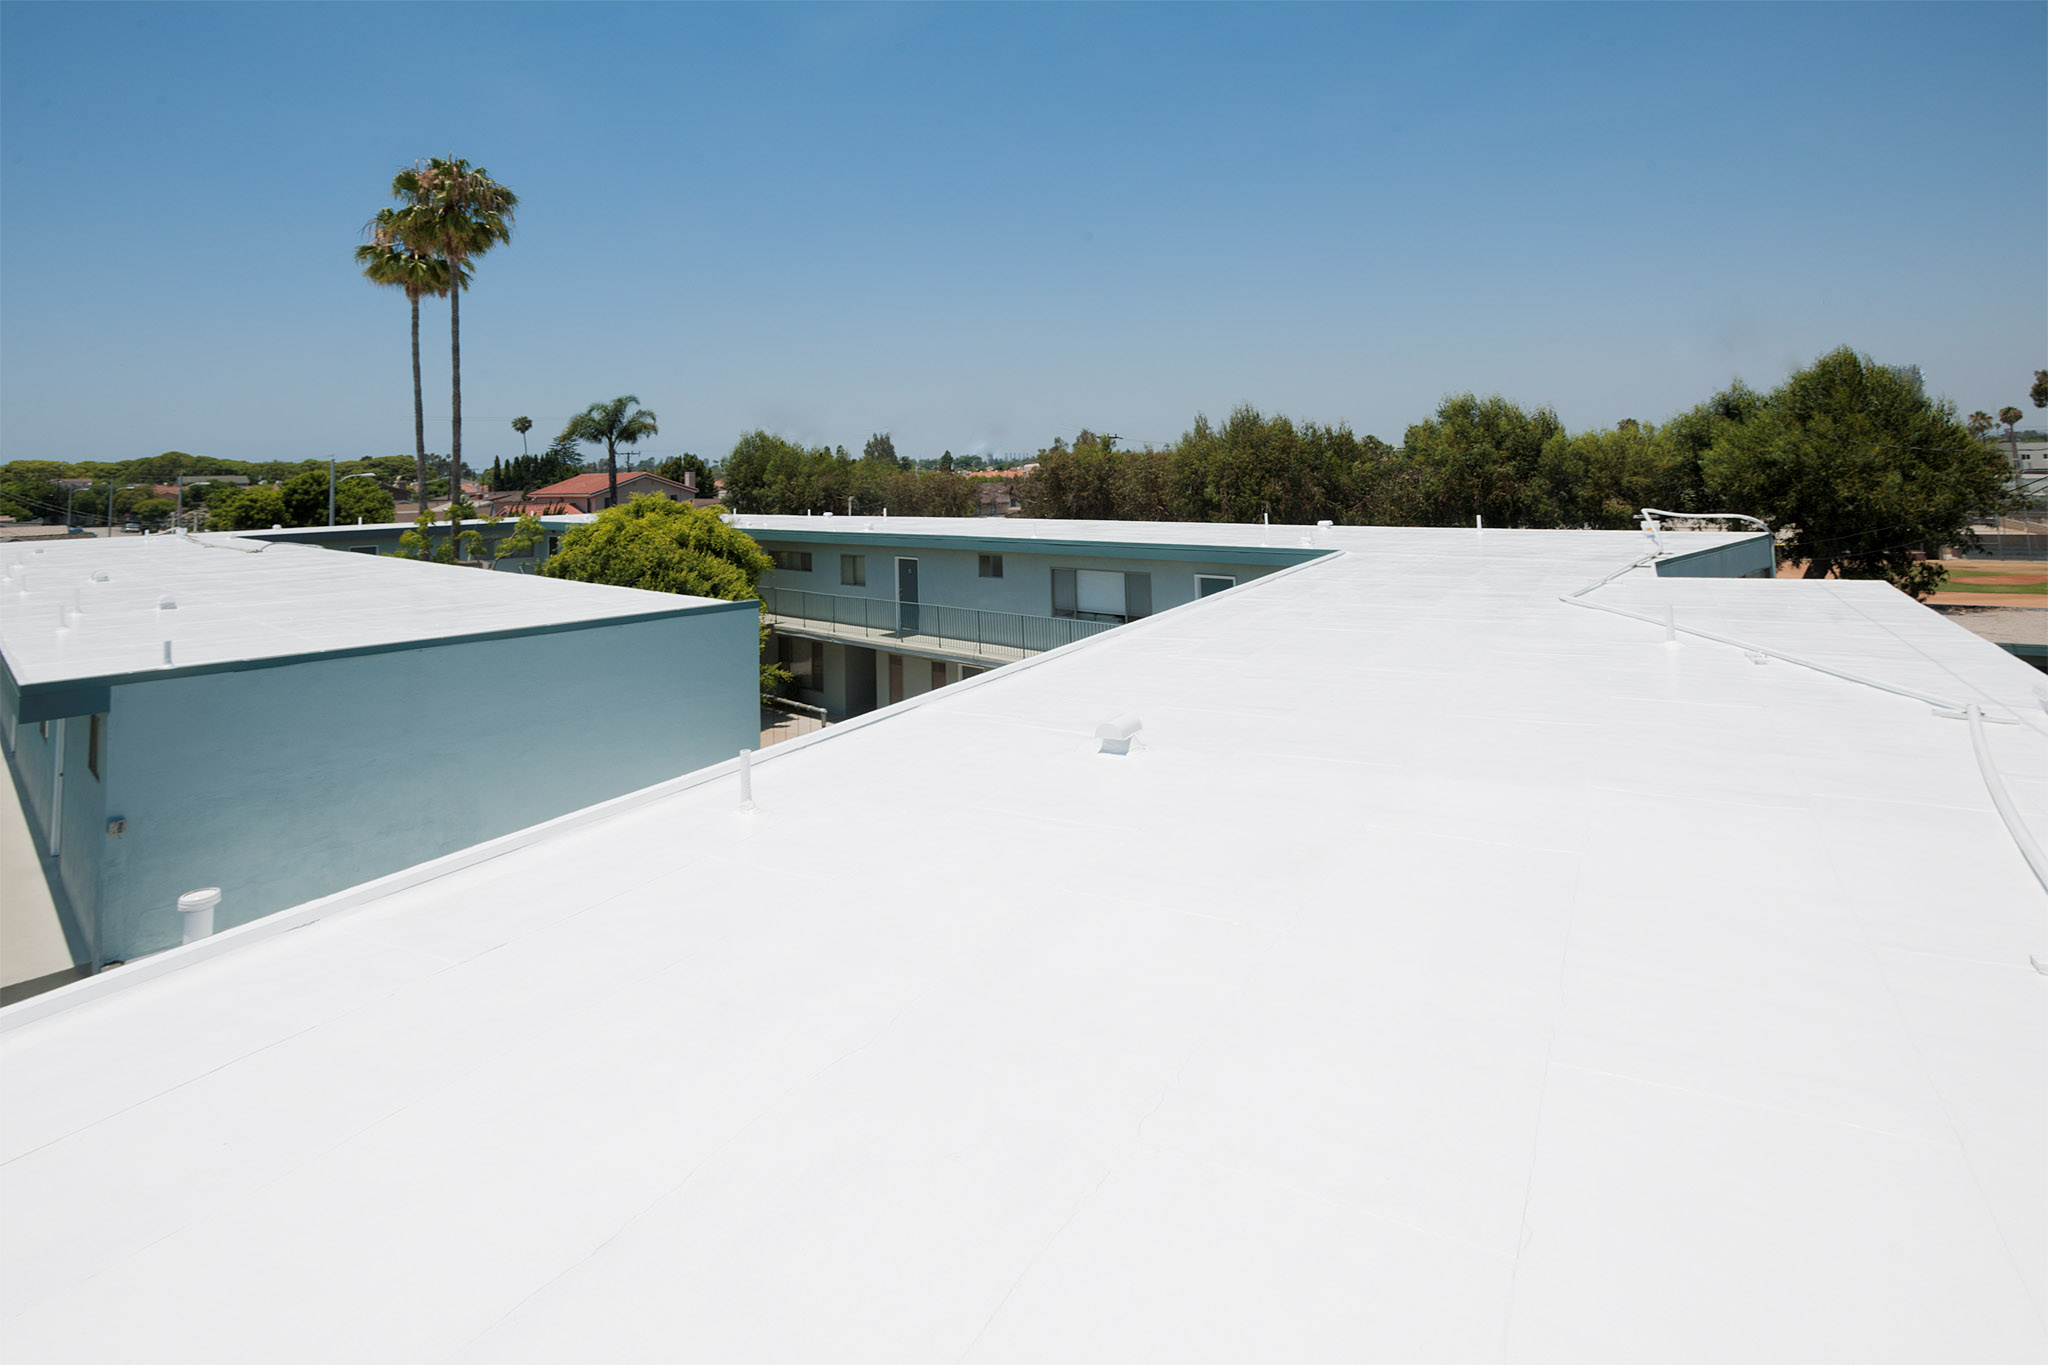 Cool Roof White Silicon Coating On Apartment Building